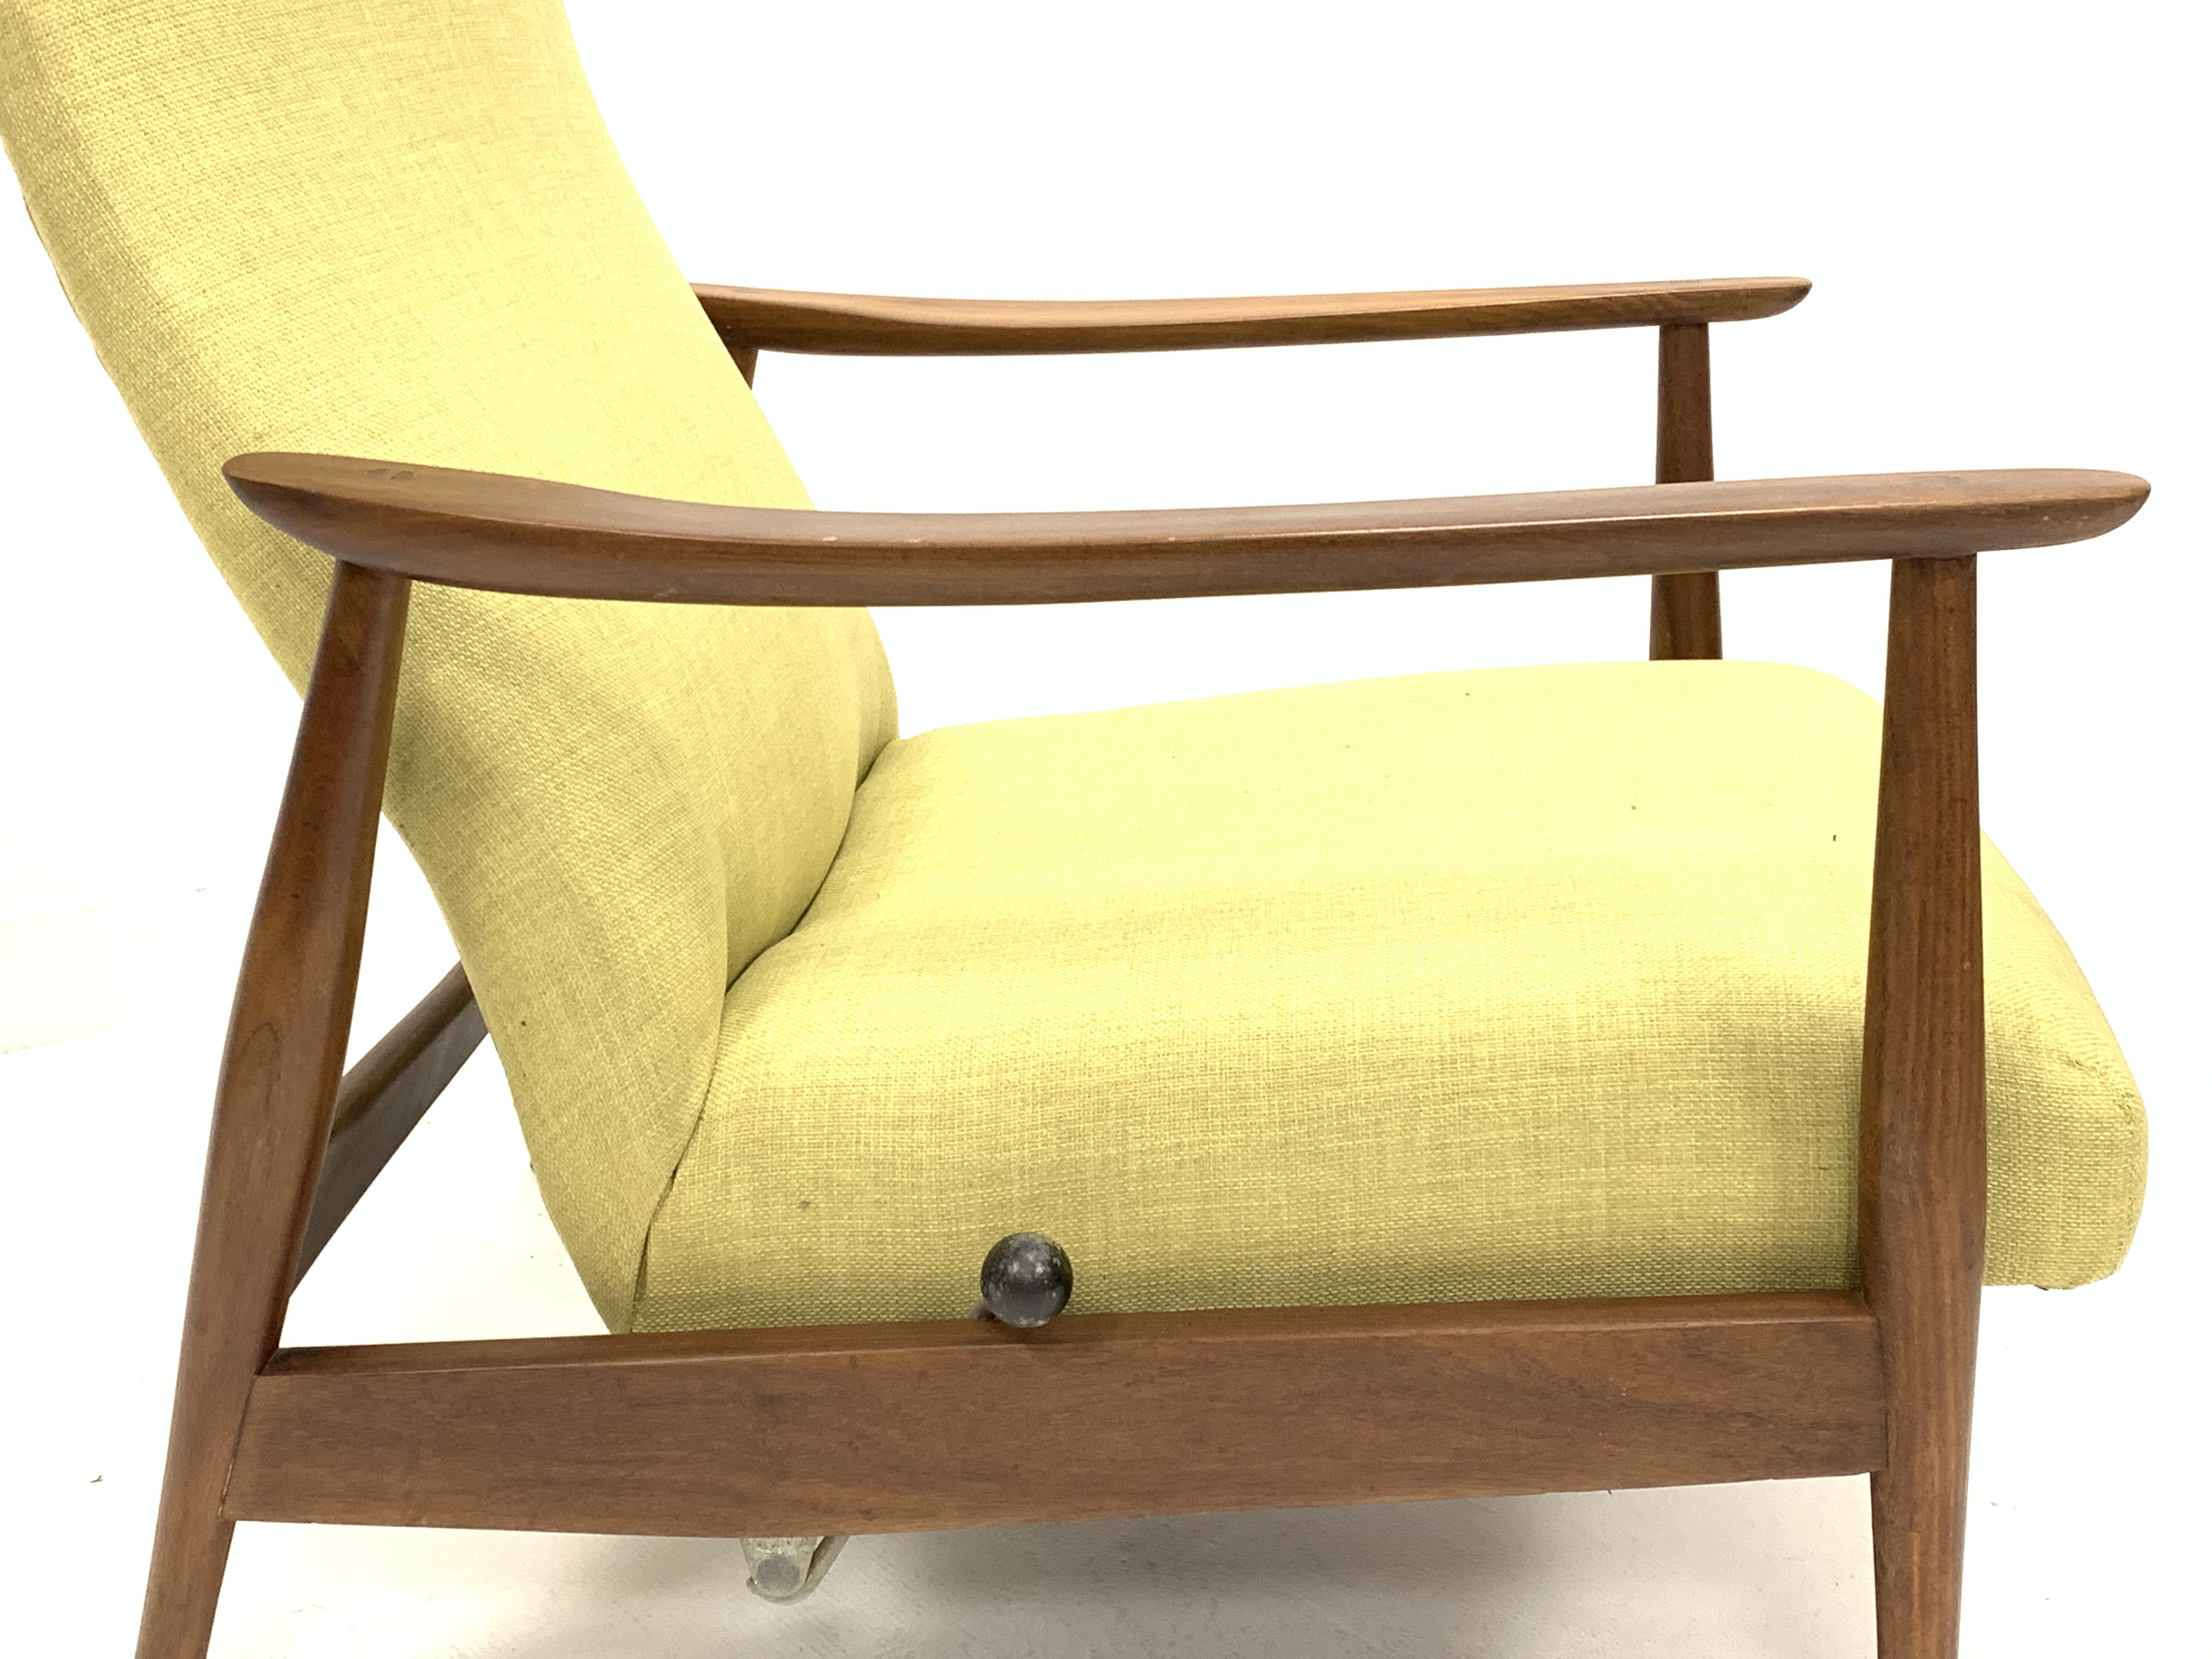 Milo Baughman - Danish teak framed rocking and reclining lounger armchair with rest lever, - Image 2 of 5